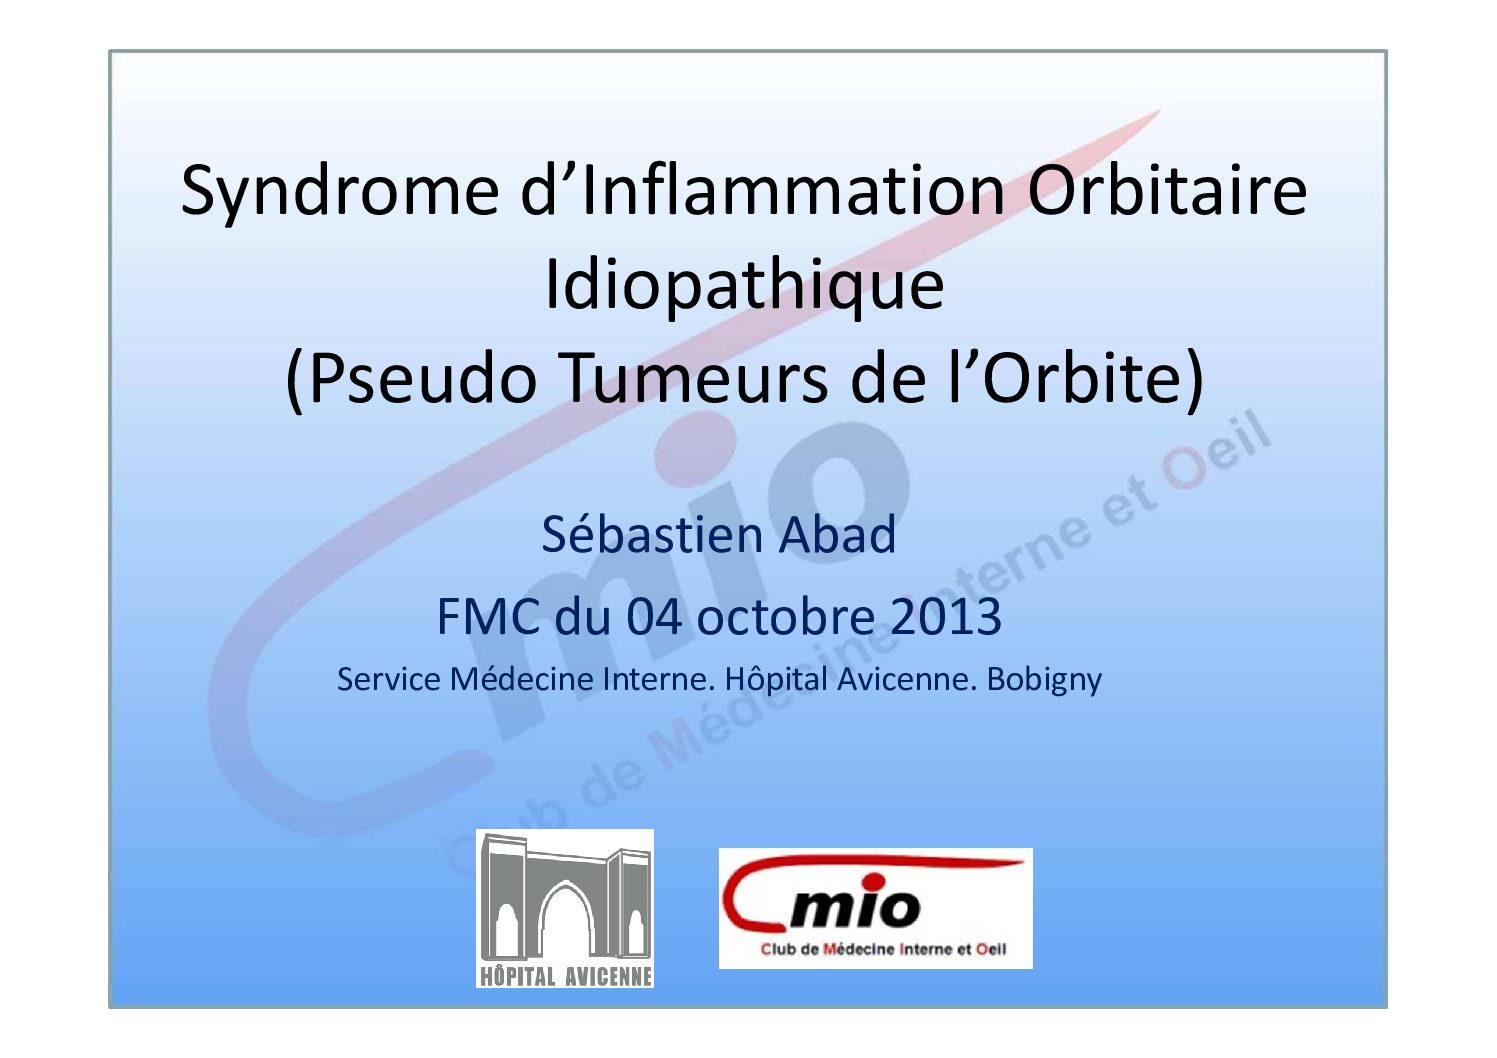 Syndrome d'inflammation orbitaire idiopathique